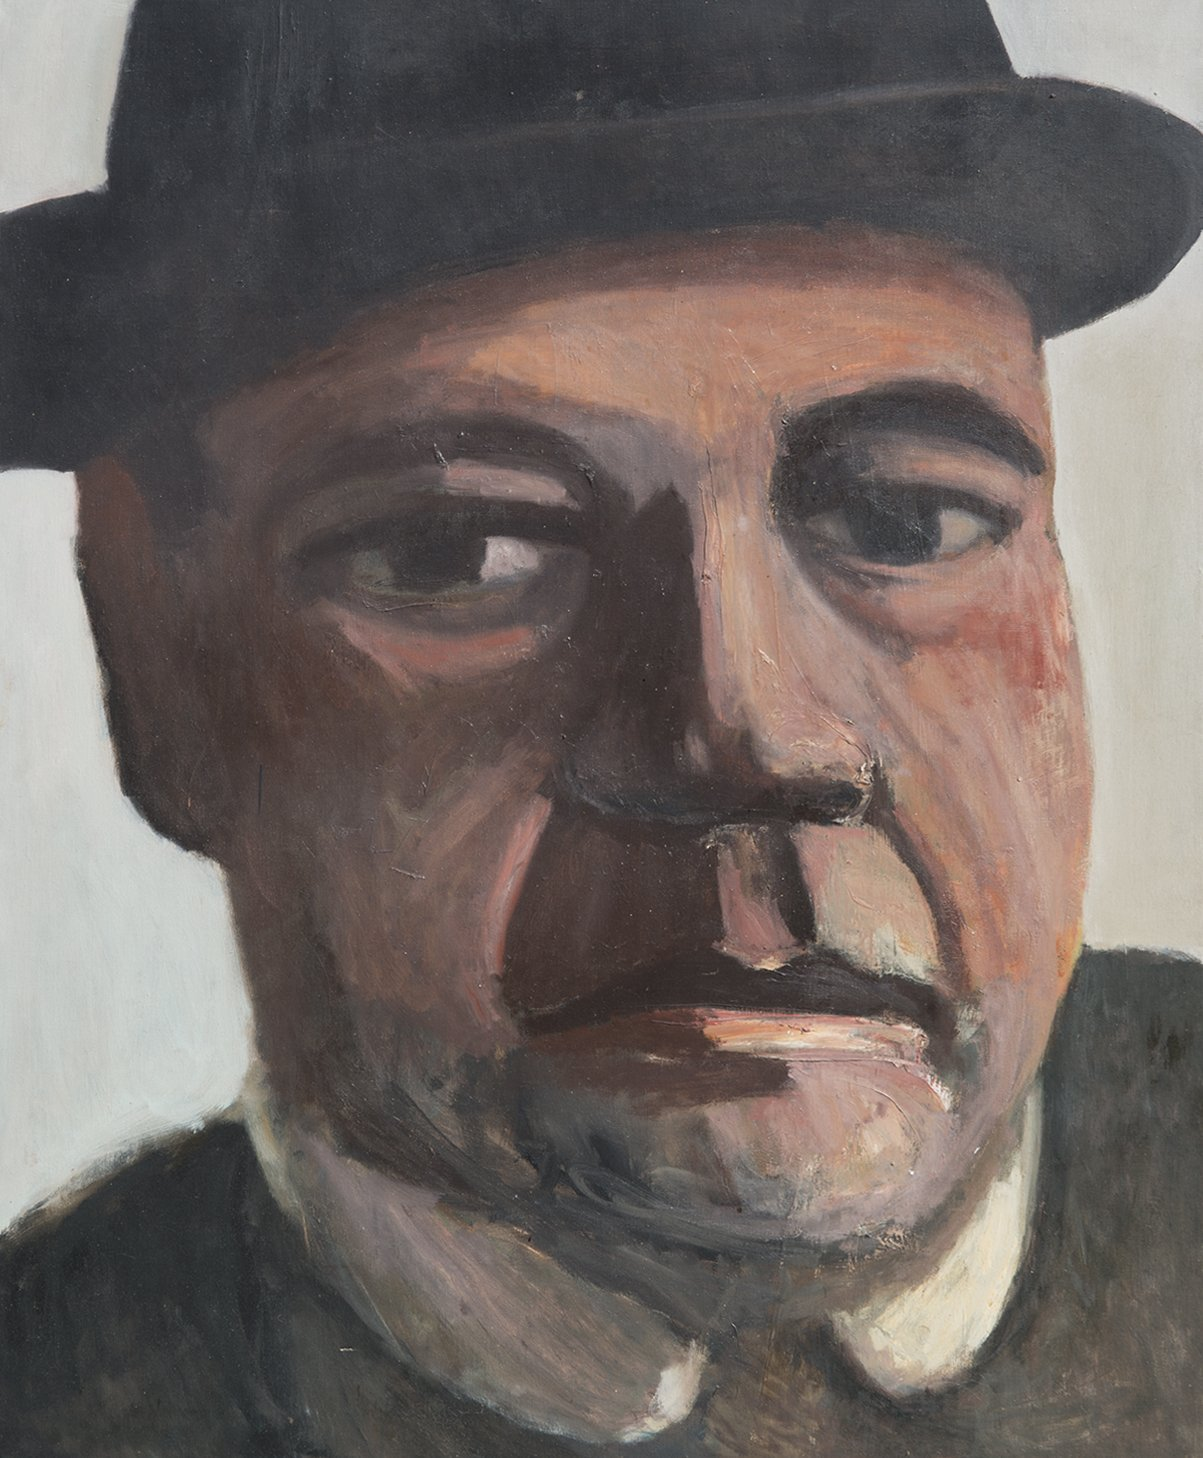 Alan Post, Man With Hat, 1975